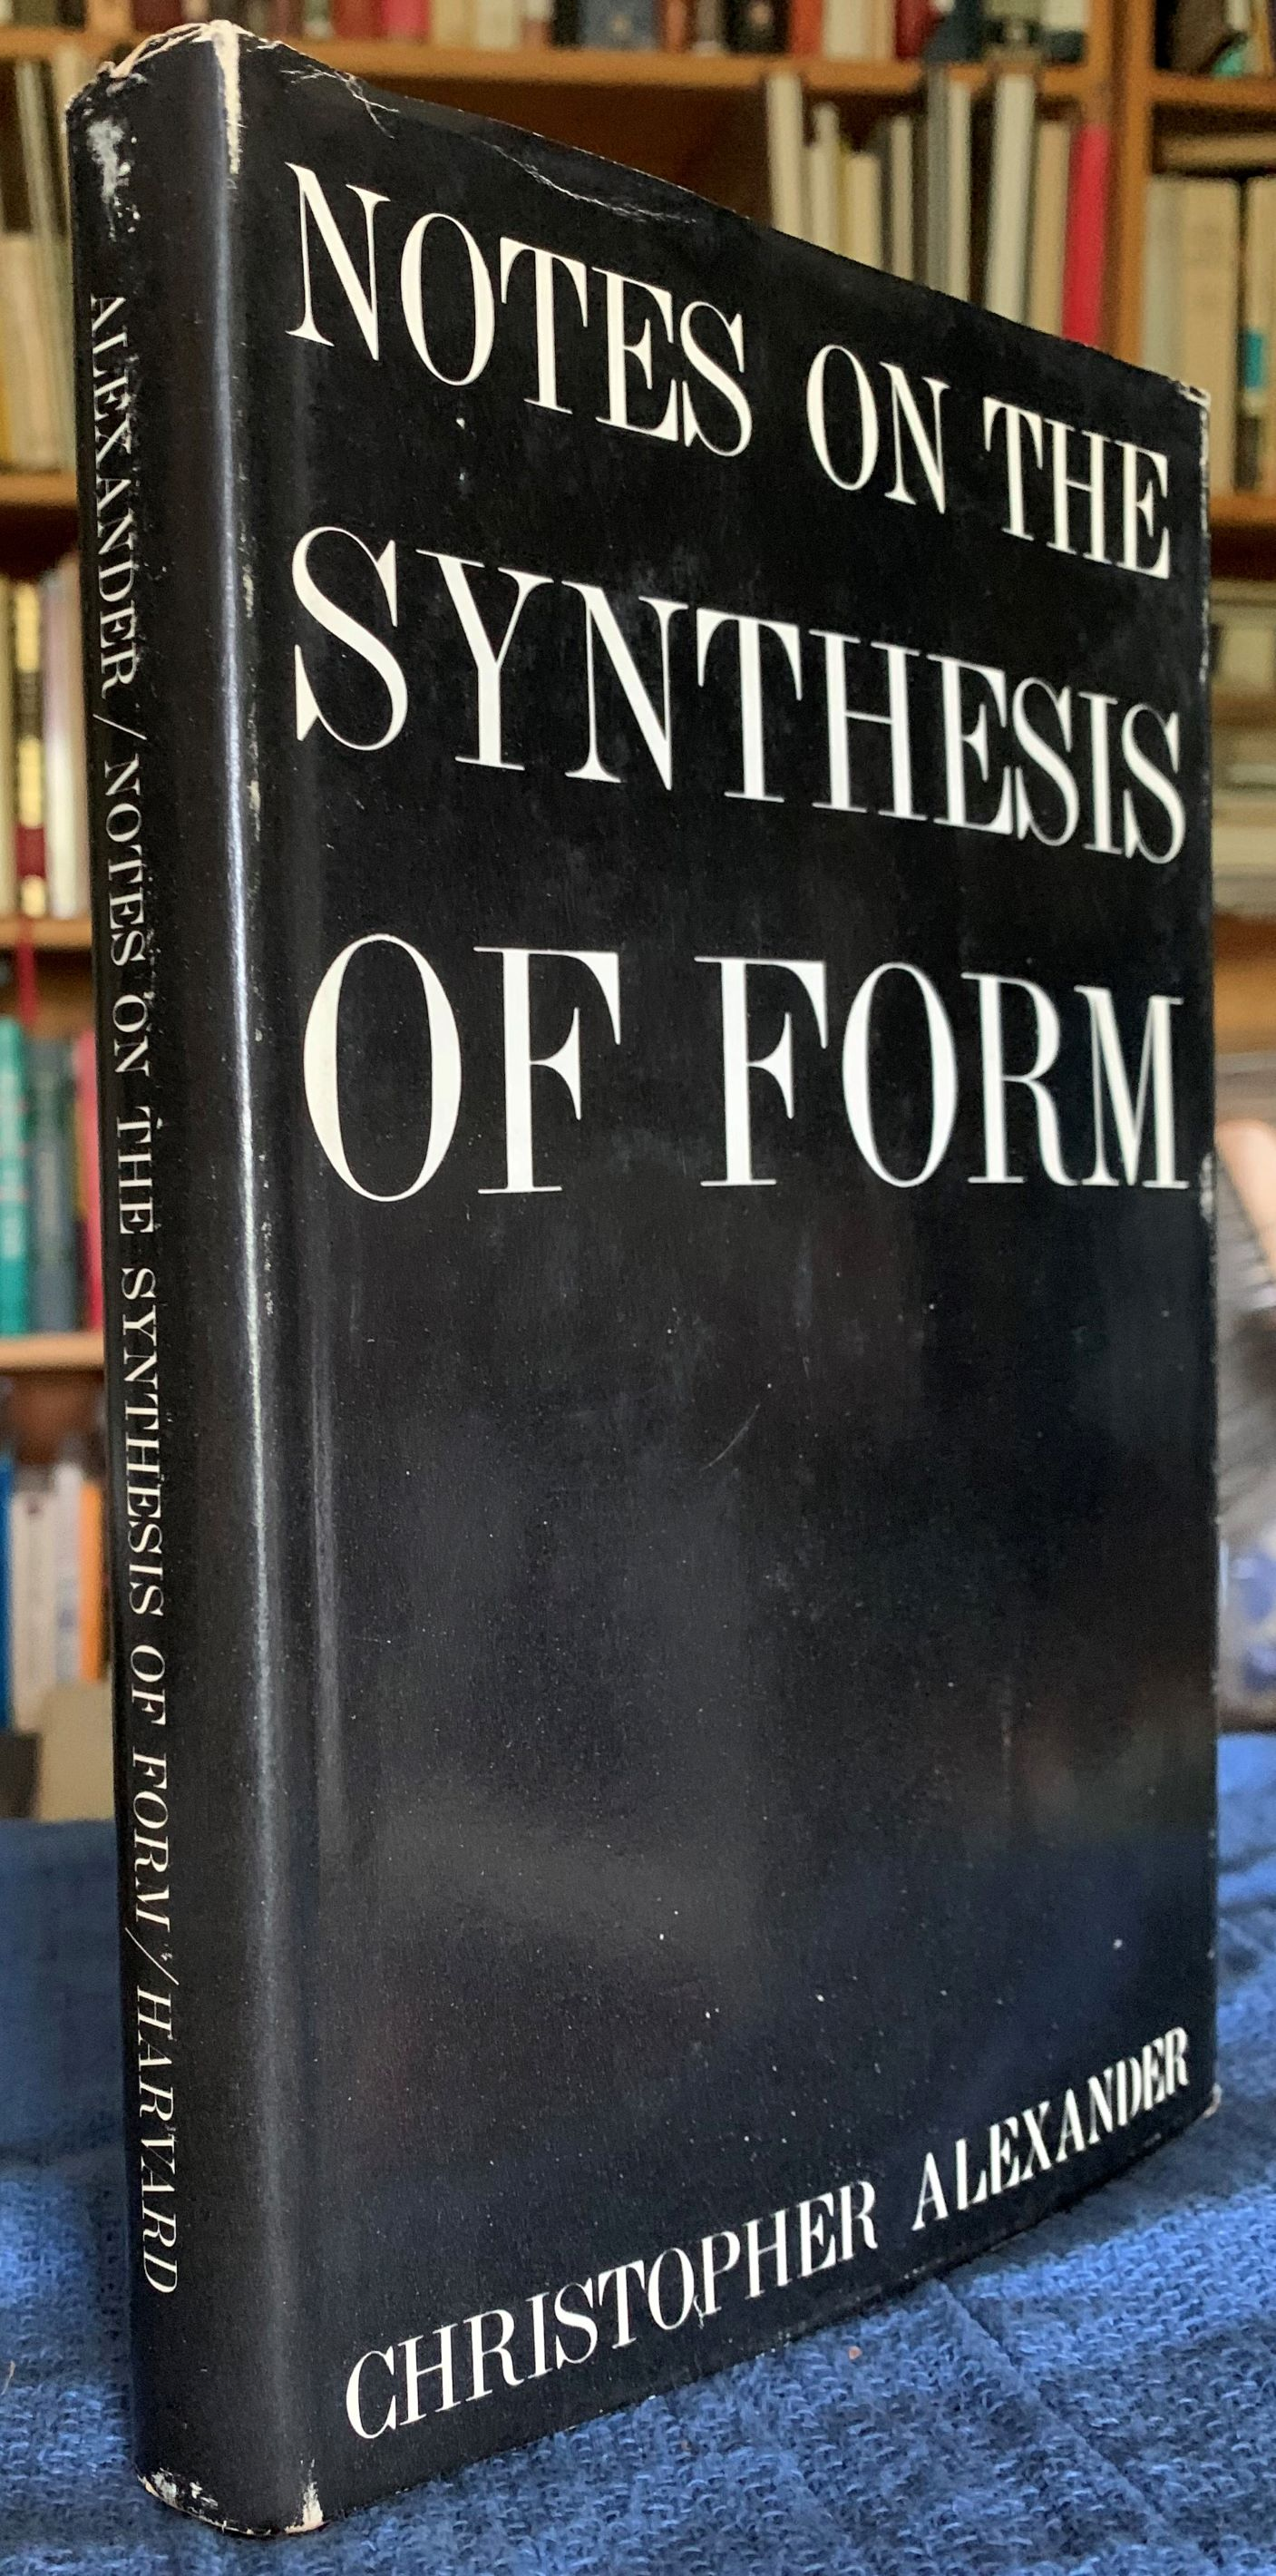 Image for Notes on the Synthesis of Form.